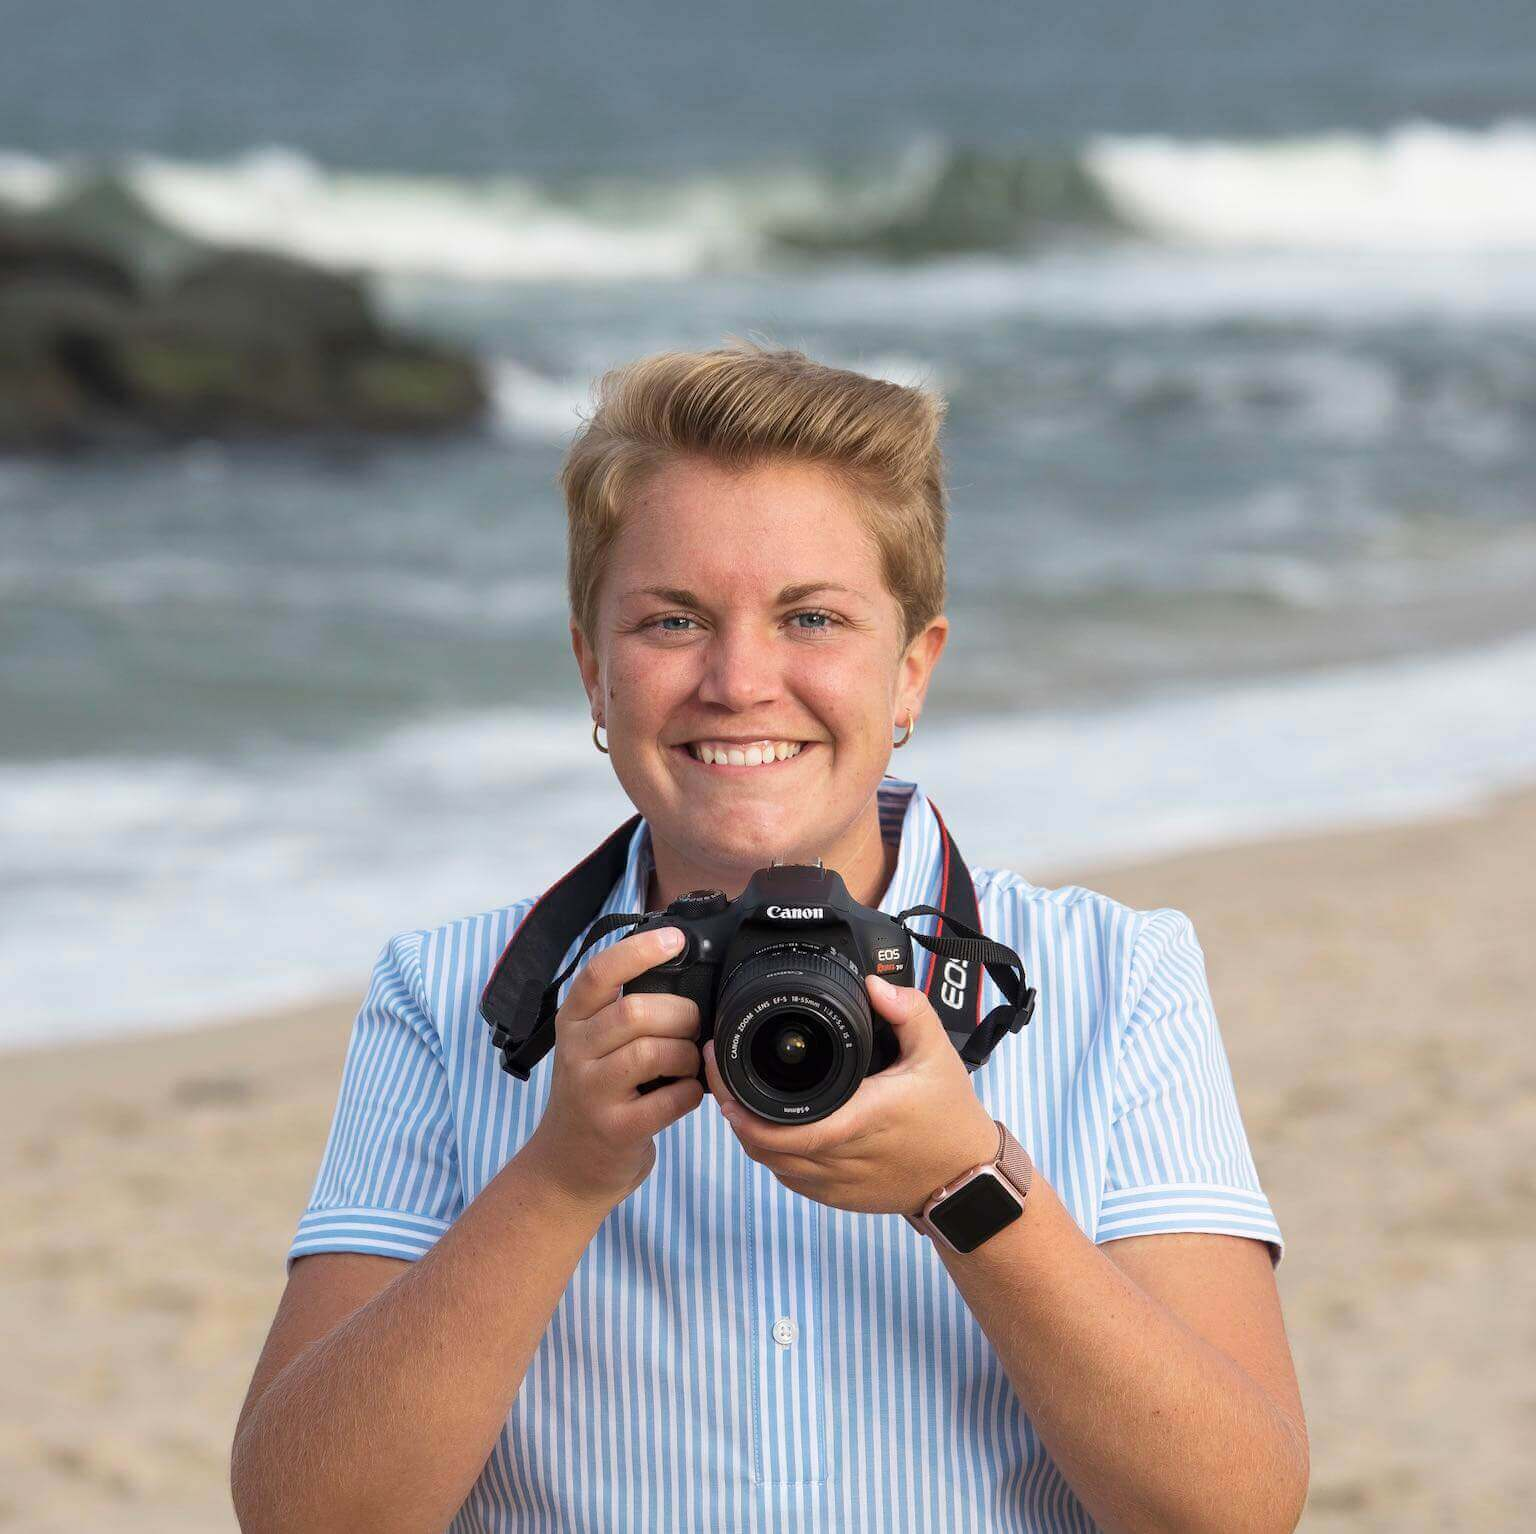 Emily Blaser holding a Canon camera with the Ocean behind her.